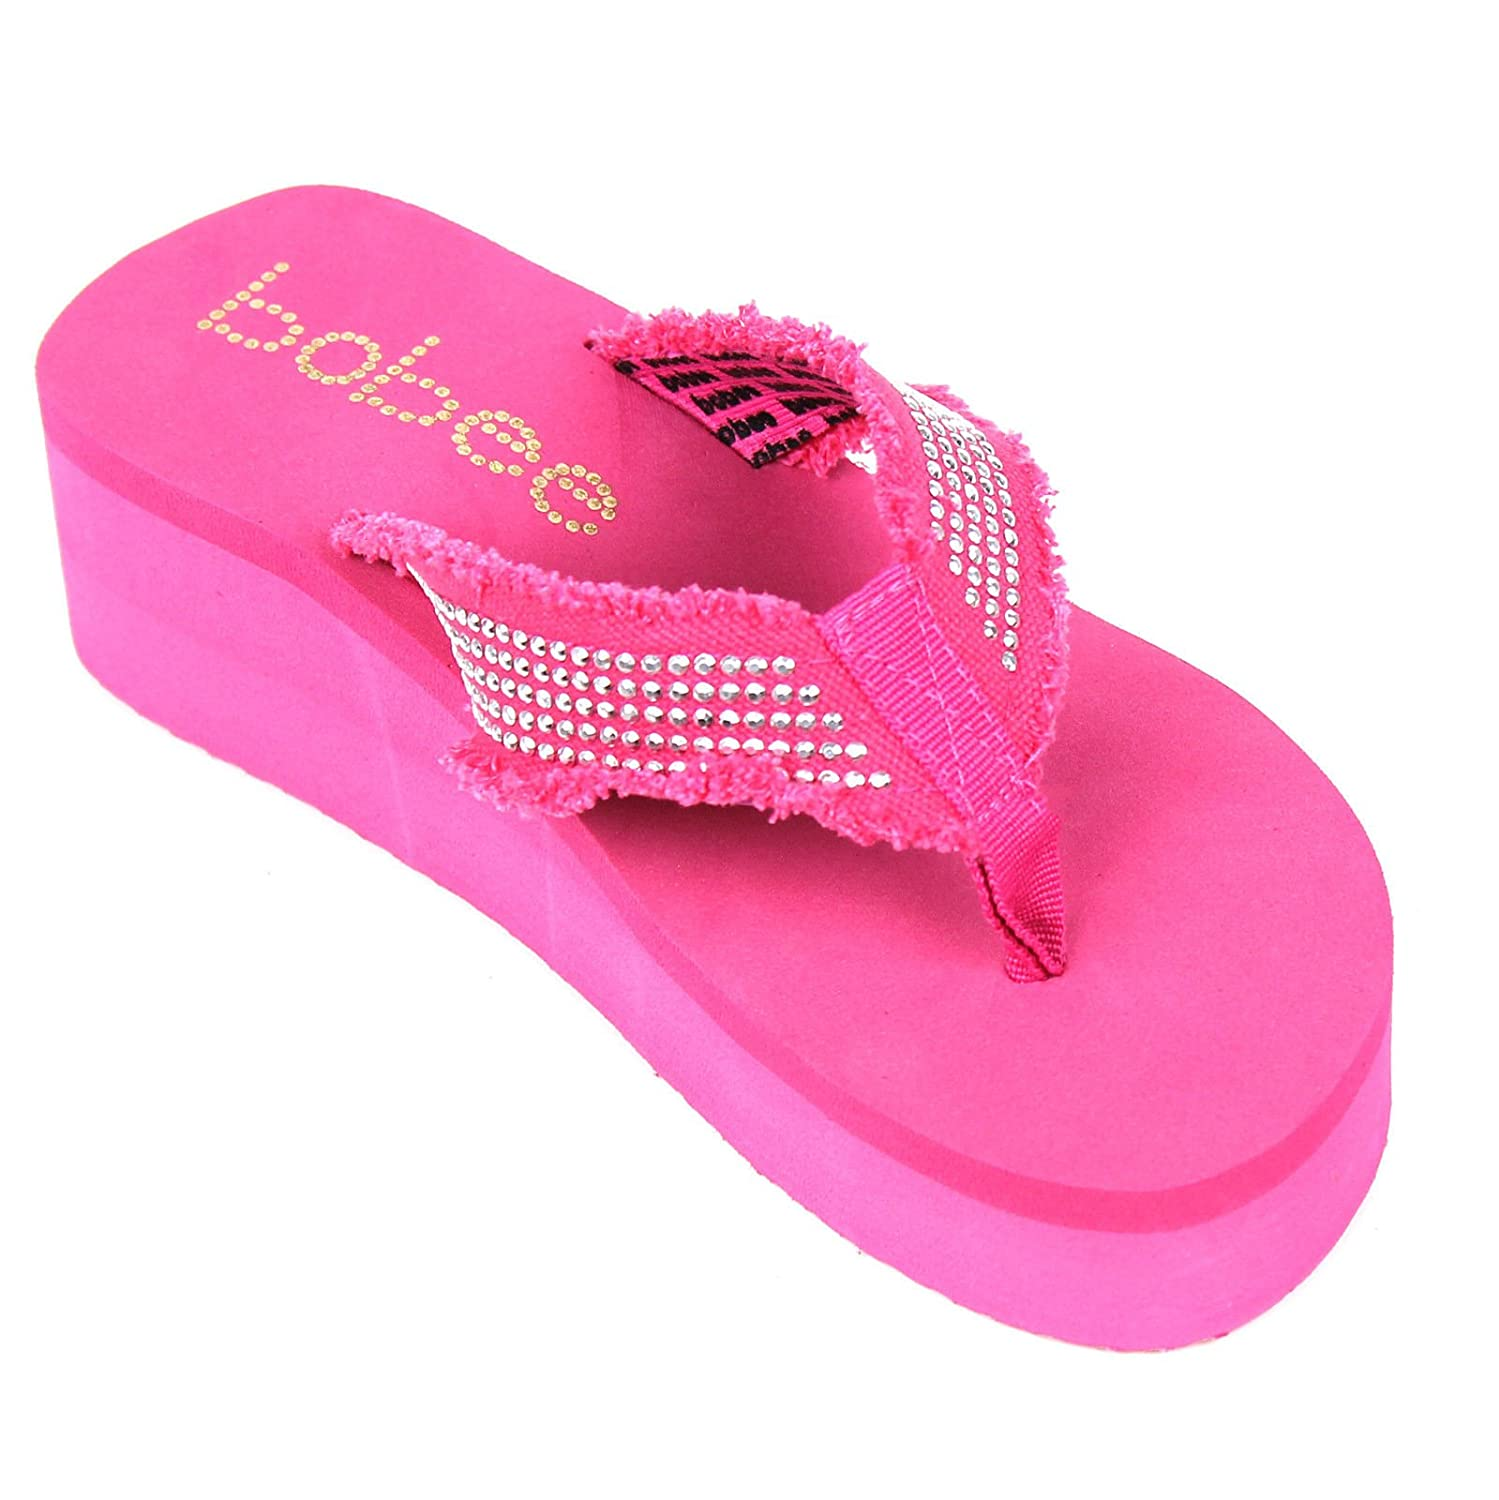 Babe Womens Flip Flops Studded Strap Platform Thongs Sandals Shoes (9, PinkBobee)